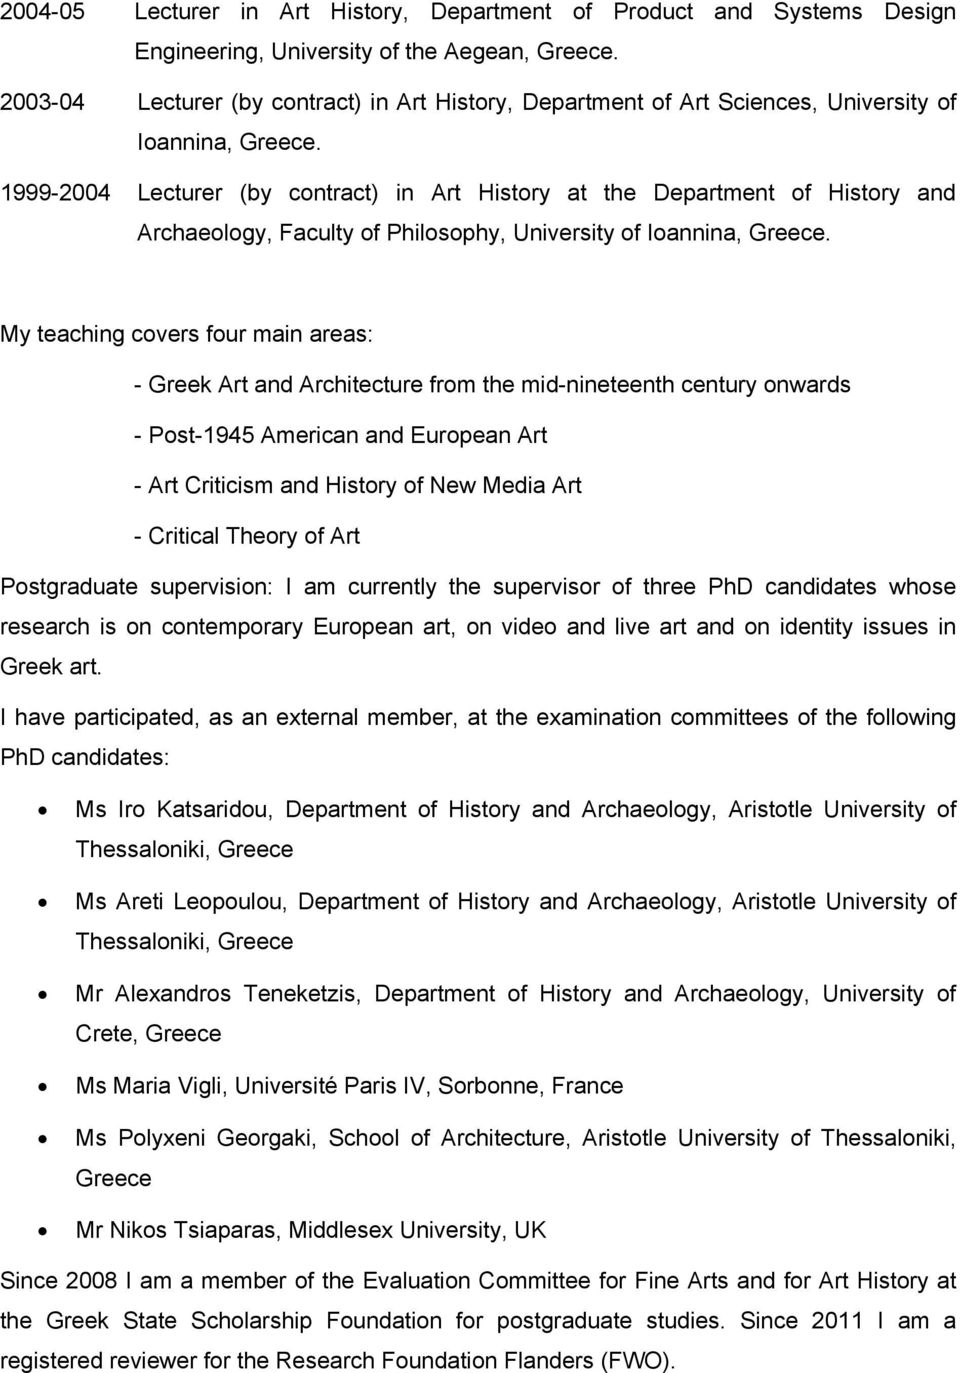 1999-2004 Lecturer (by contract) in Art History at the Department of History and Archaeology, Faculty of Philosophy, University of Ioannina, Greece.